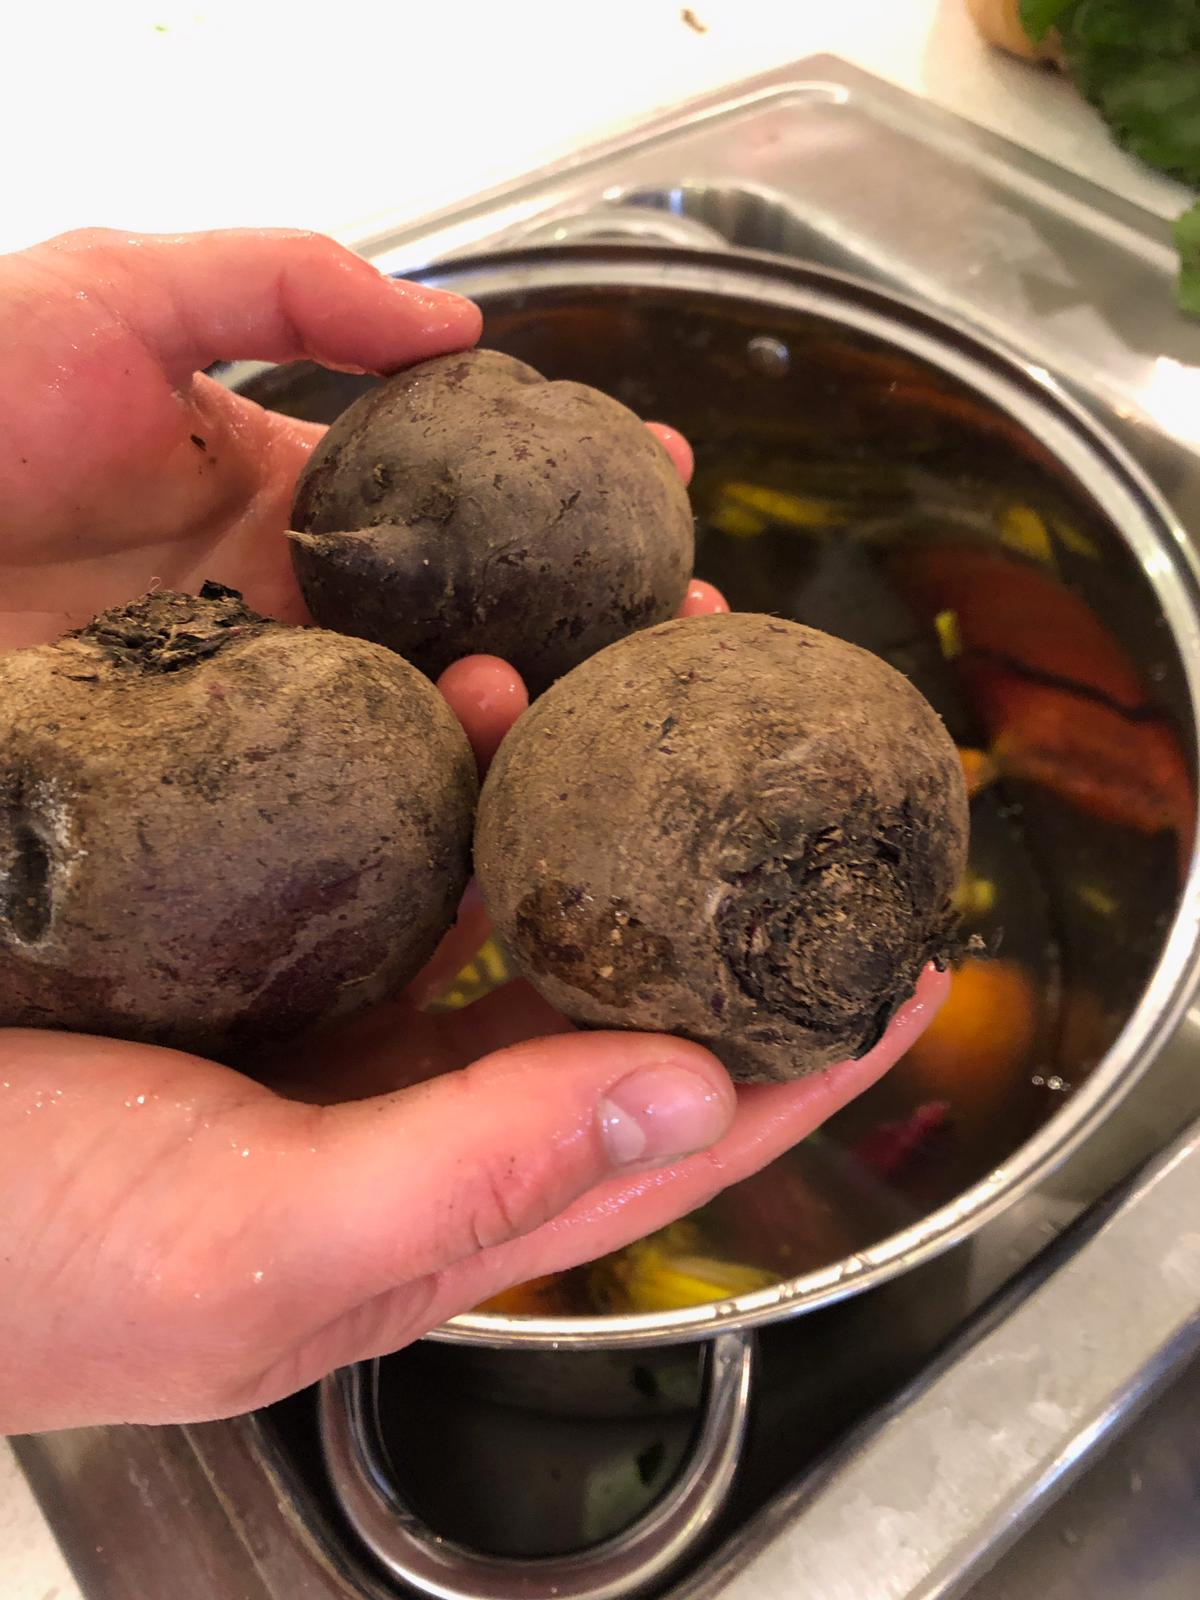 Delicious Dirt - Beets will naturally have a healthy coating of dirt! This is totally normal, it simply needs to be washed off!